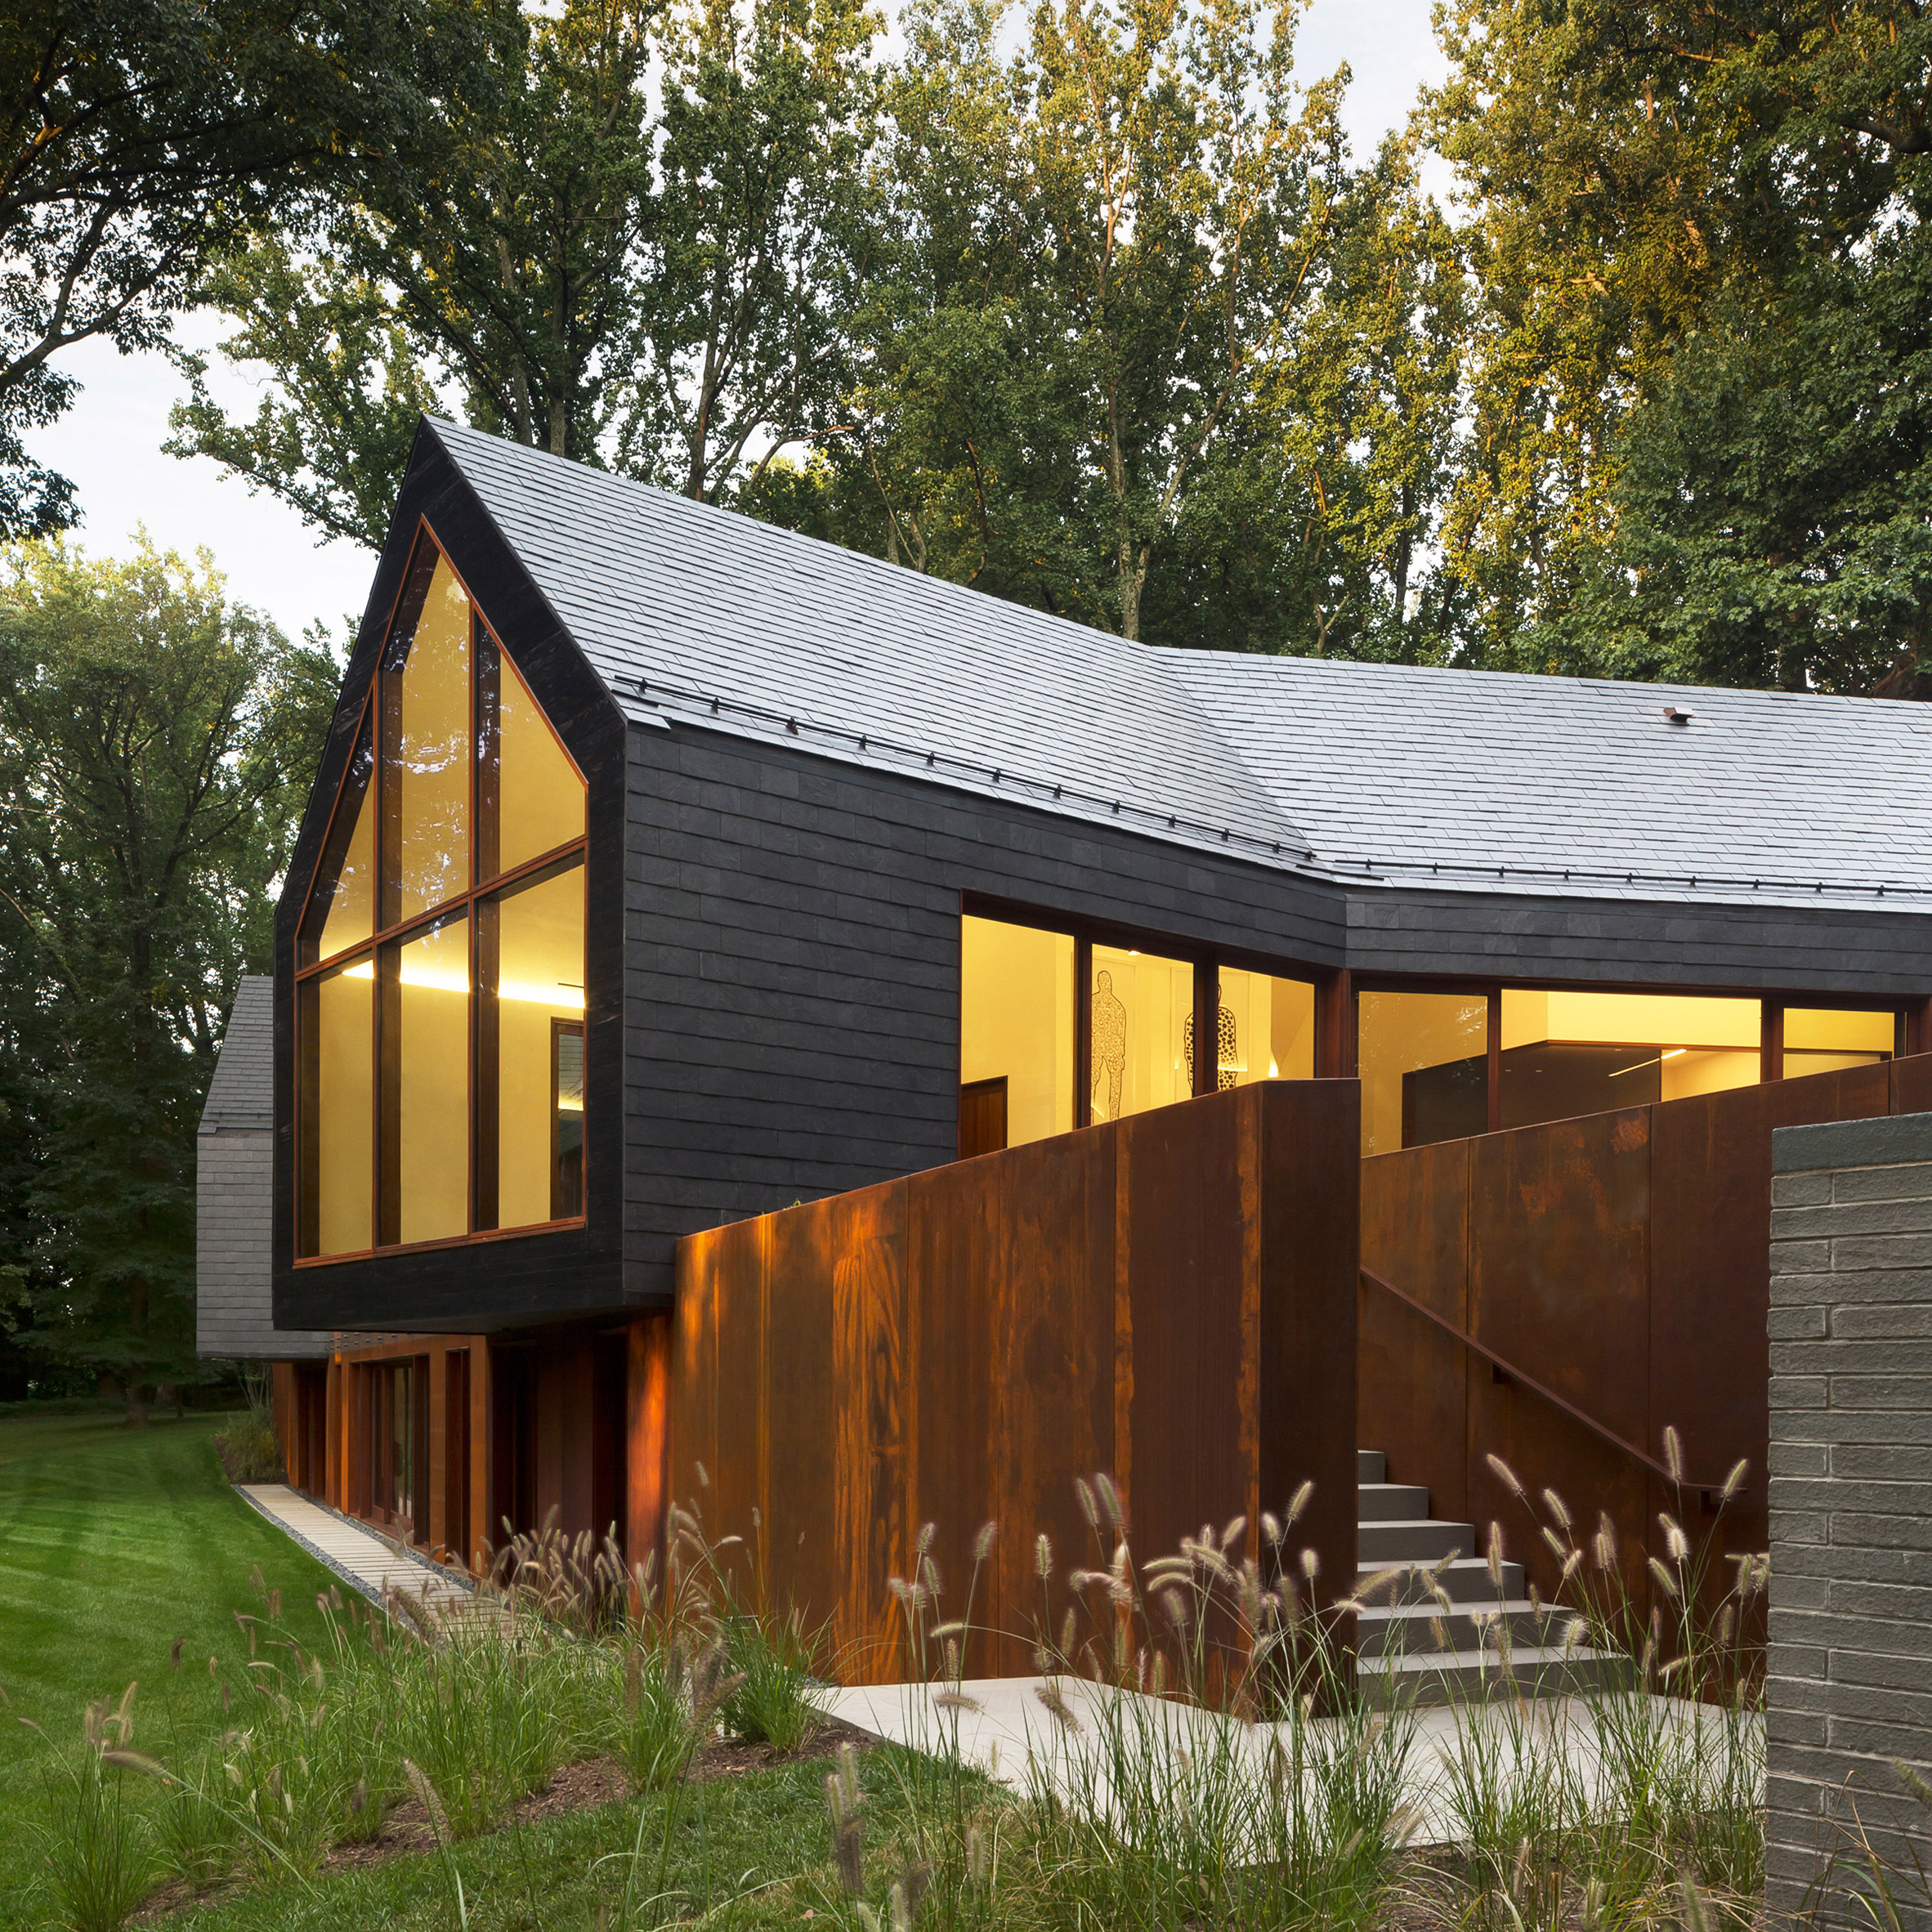 Slate House by Ziger Snead replaces fire-ravaged Maryland home